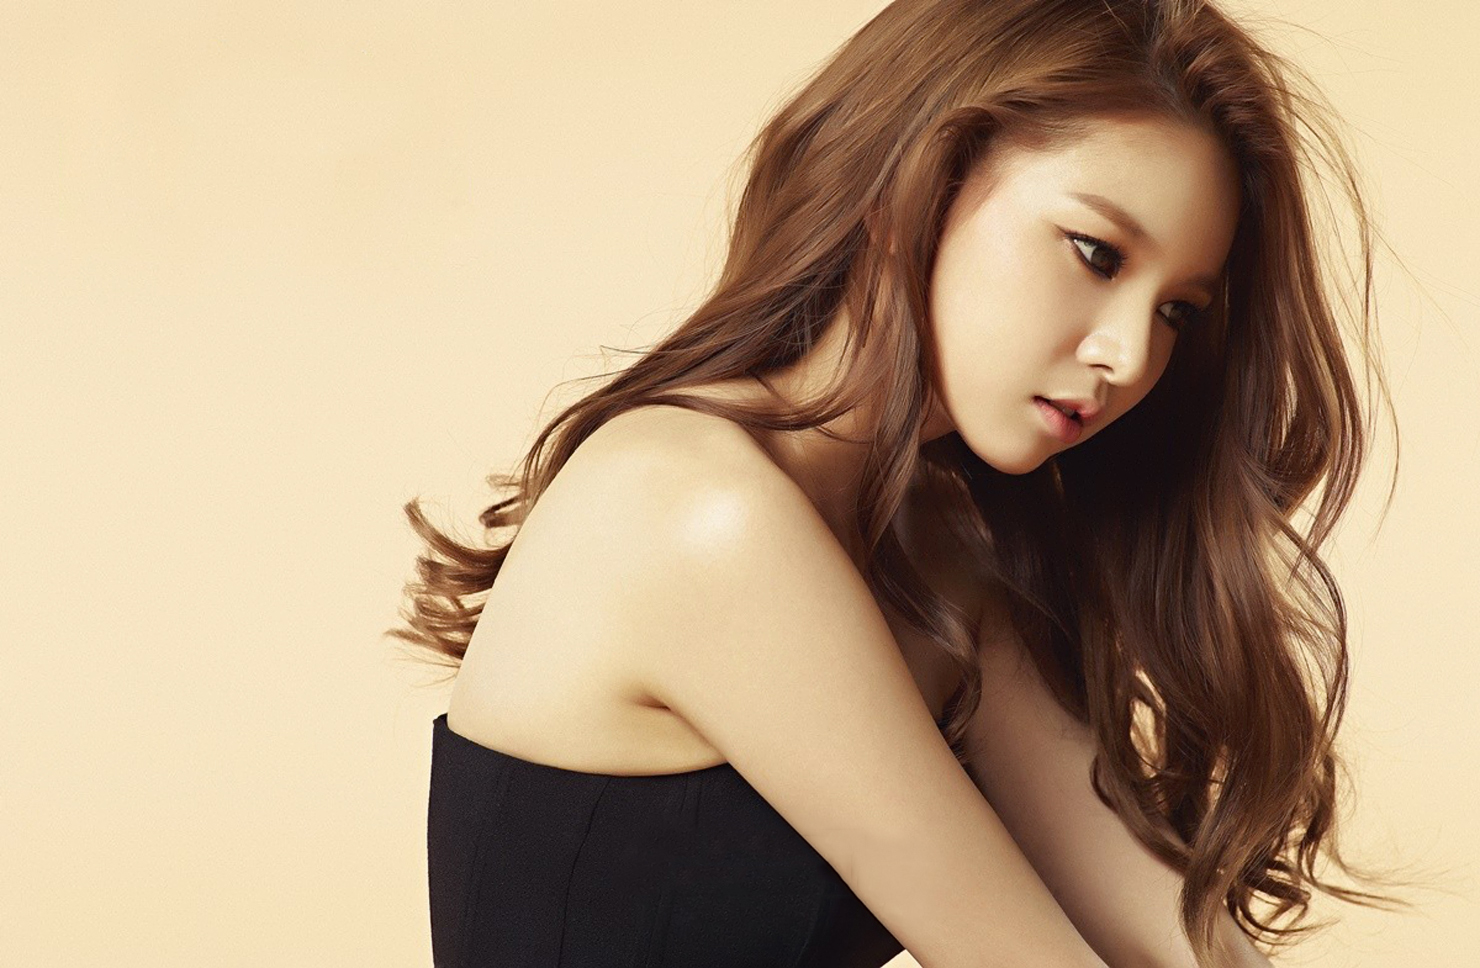 https://i0.wp.com/images6.fanpop.com/image/photos/38100000/Fiestar-s-Jei-for-HIM-Magazine-March-2015-fiestar-38186457-1480-968.jpg